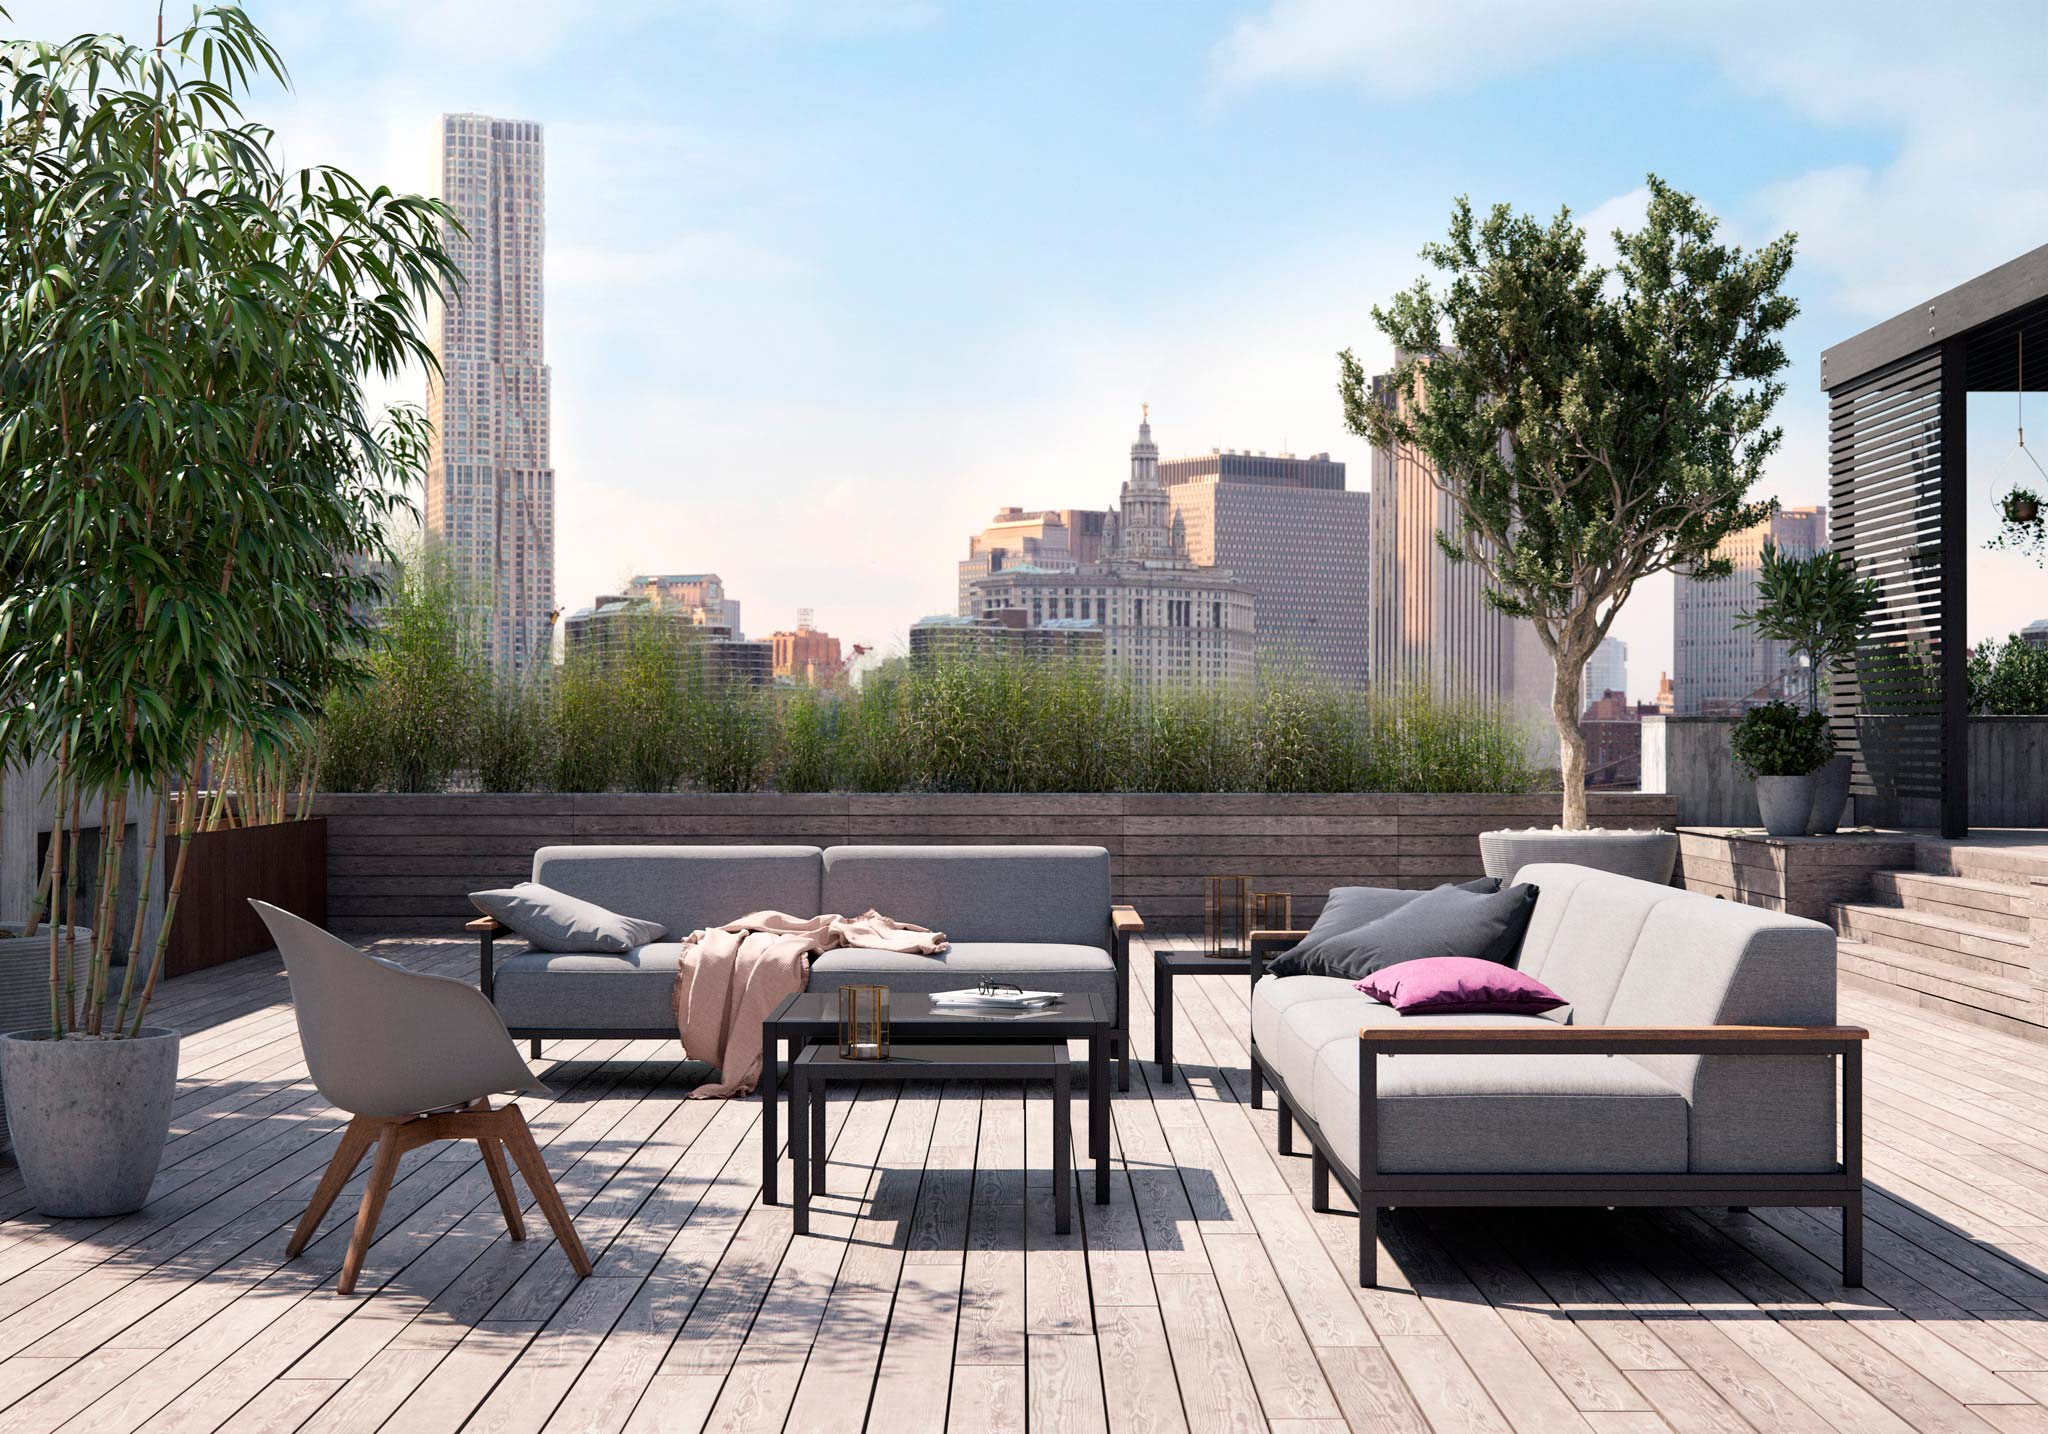 BoConcept 3D exterior images by Cadesign form